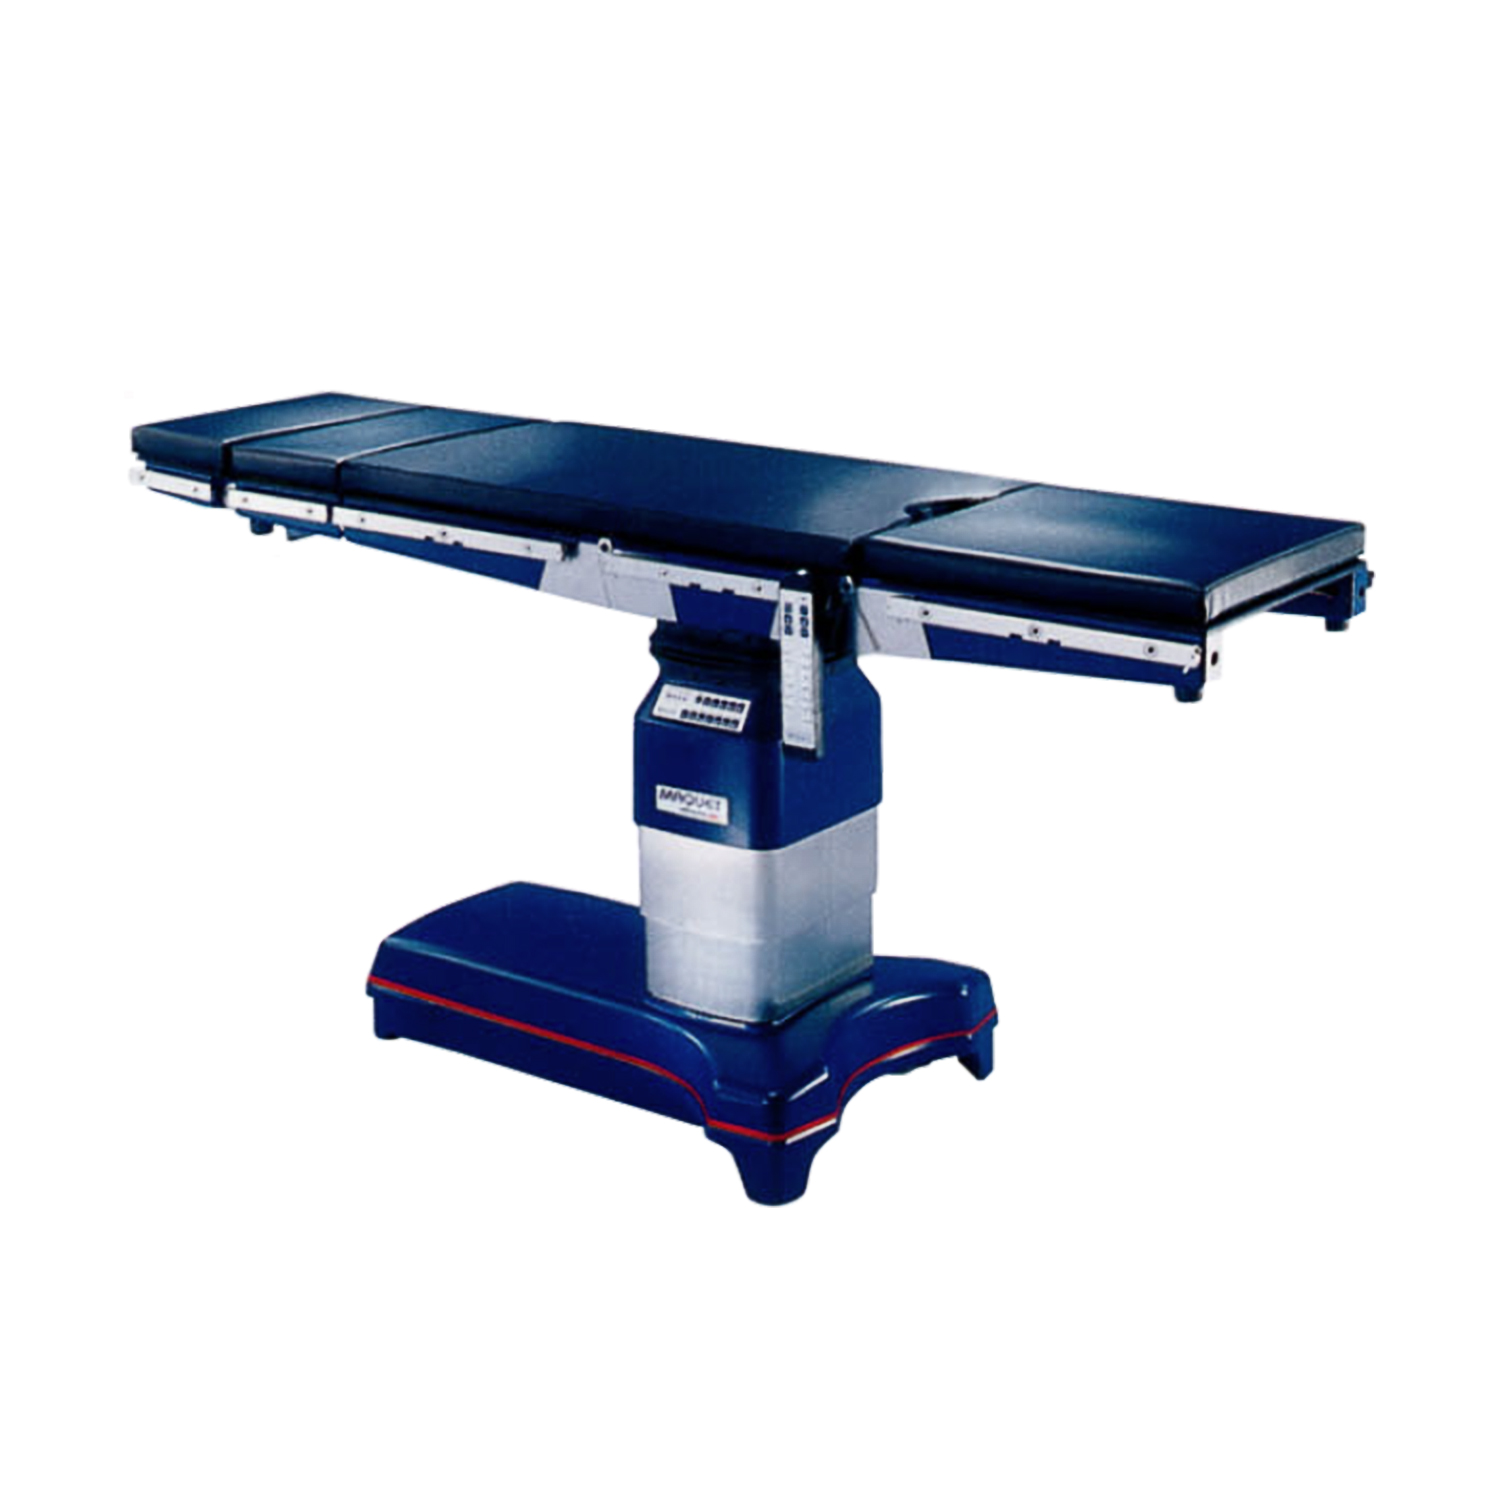 Maquet Alphastar 1132 Mobile Surgical Table